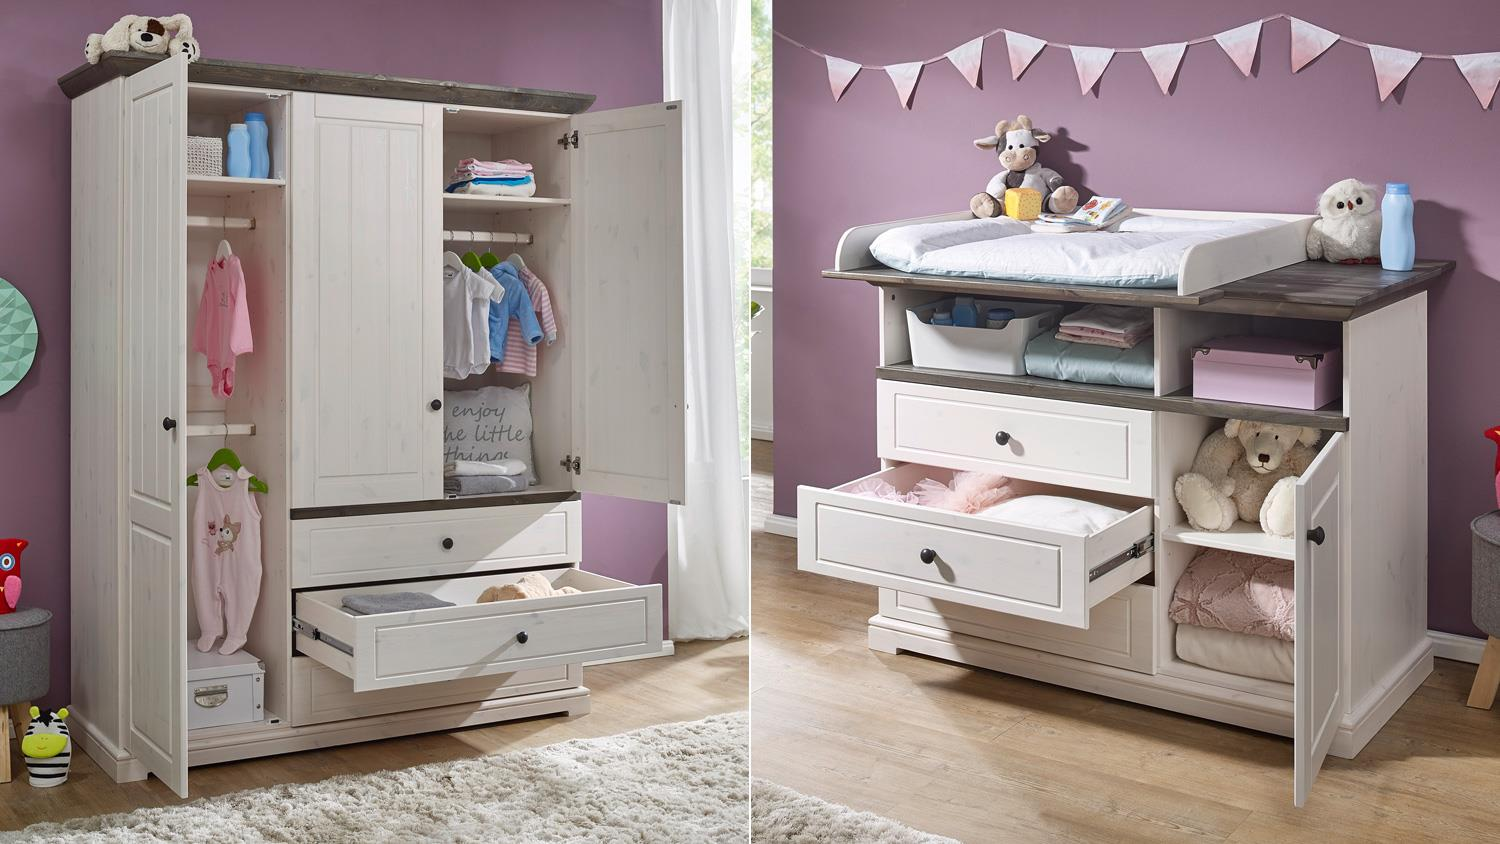 babyzimmer jolina in kiefer massiv wei und grau 3 teilig landhausstil. Black Bedroom Furniture Sets. Home Design Ideas